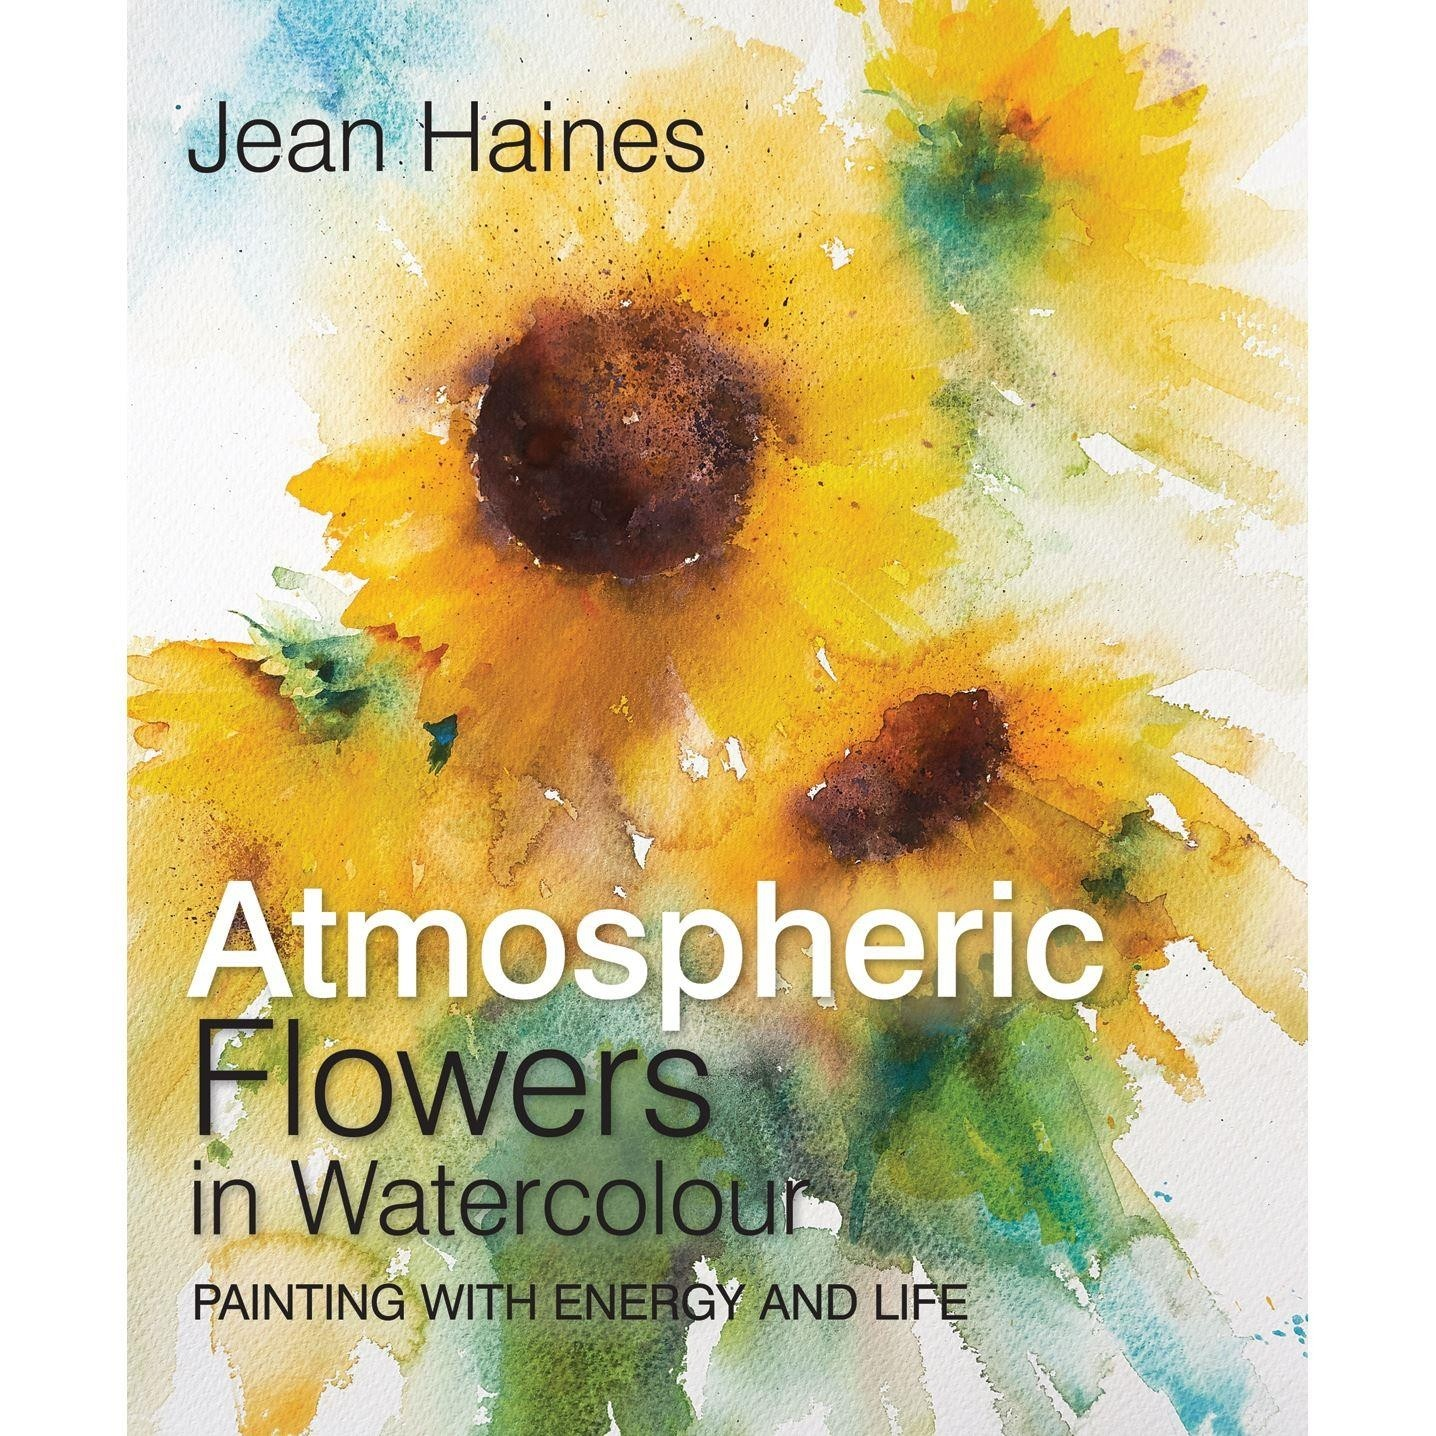 watercolour flowers step by step guide